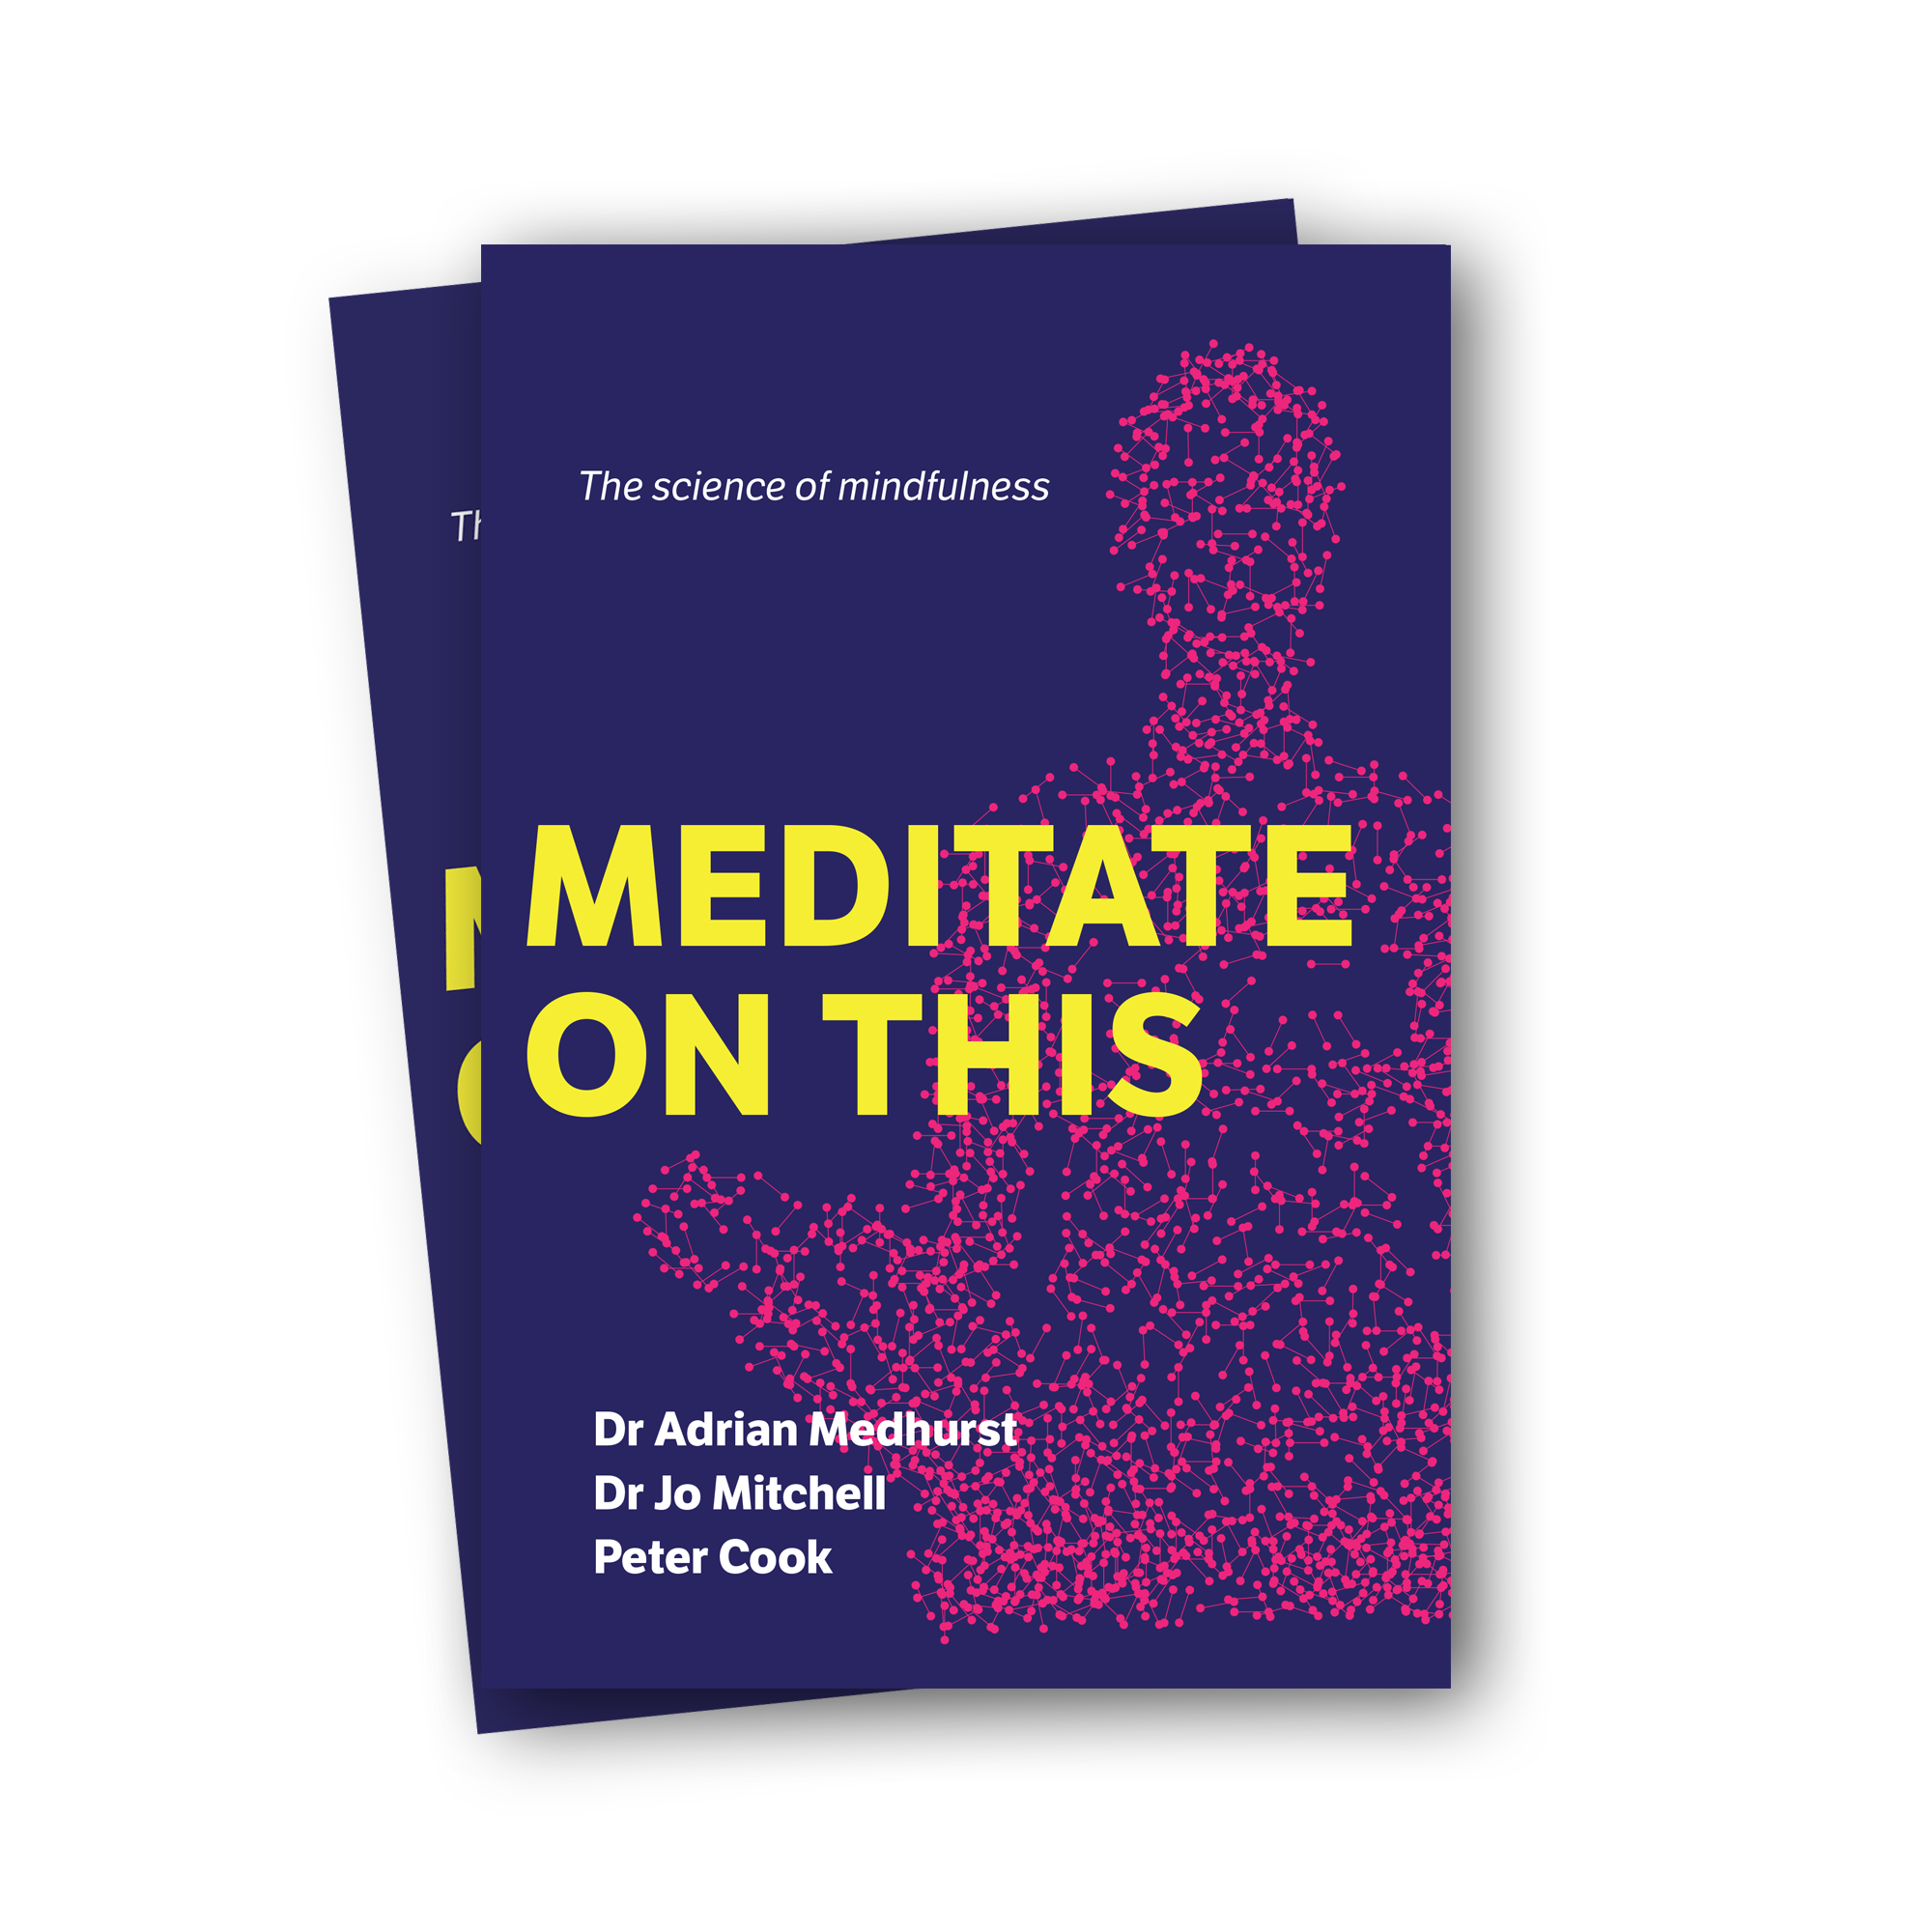 Meditate On This - What do artists Hugh Jackman, Emma Watson, and Russell Brand have in common with business gurus Bill Gates, Arianna Huffington and Oprah Winfrey. What do they all share with sportspeople Novak Djokovic, Kobe Bryant, and the whole AC Milan soccer team?The title of this book is a bit of a clue if you're struggling.